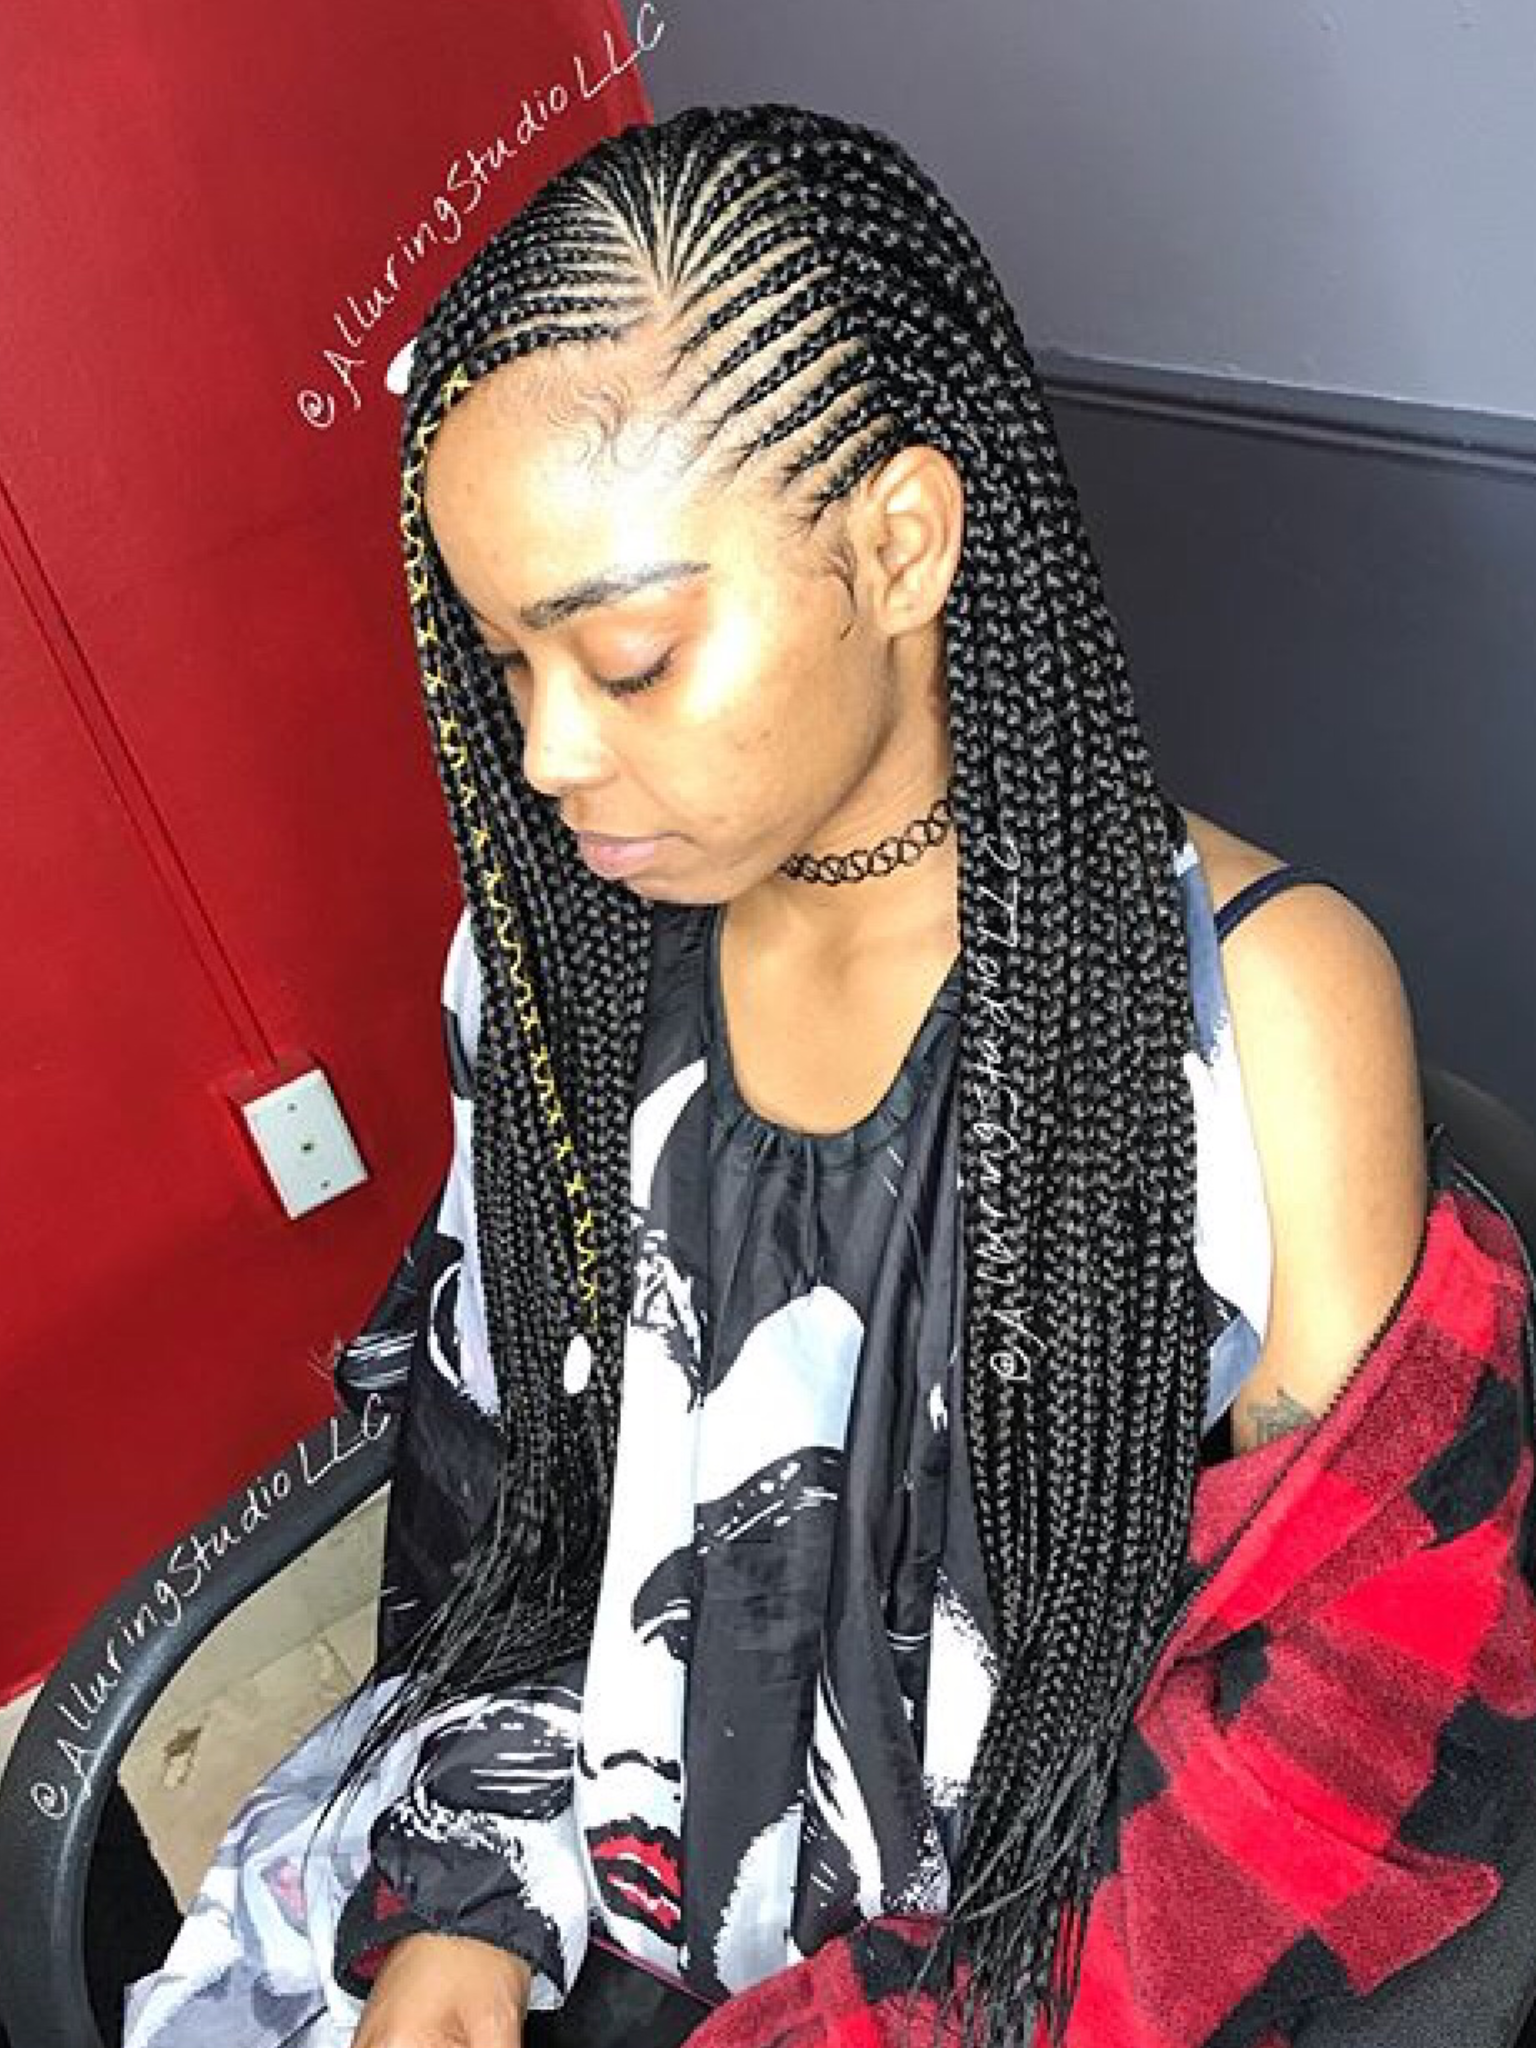 black hair styles hair ideas h a i r hair styles braided 1015 | 1f61dca4b91c522a515da7e66b1015a9